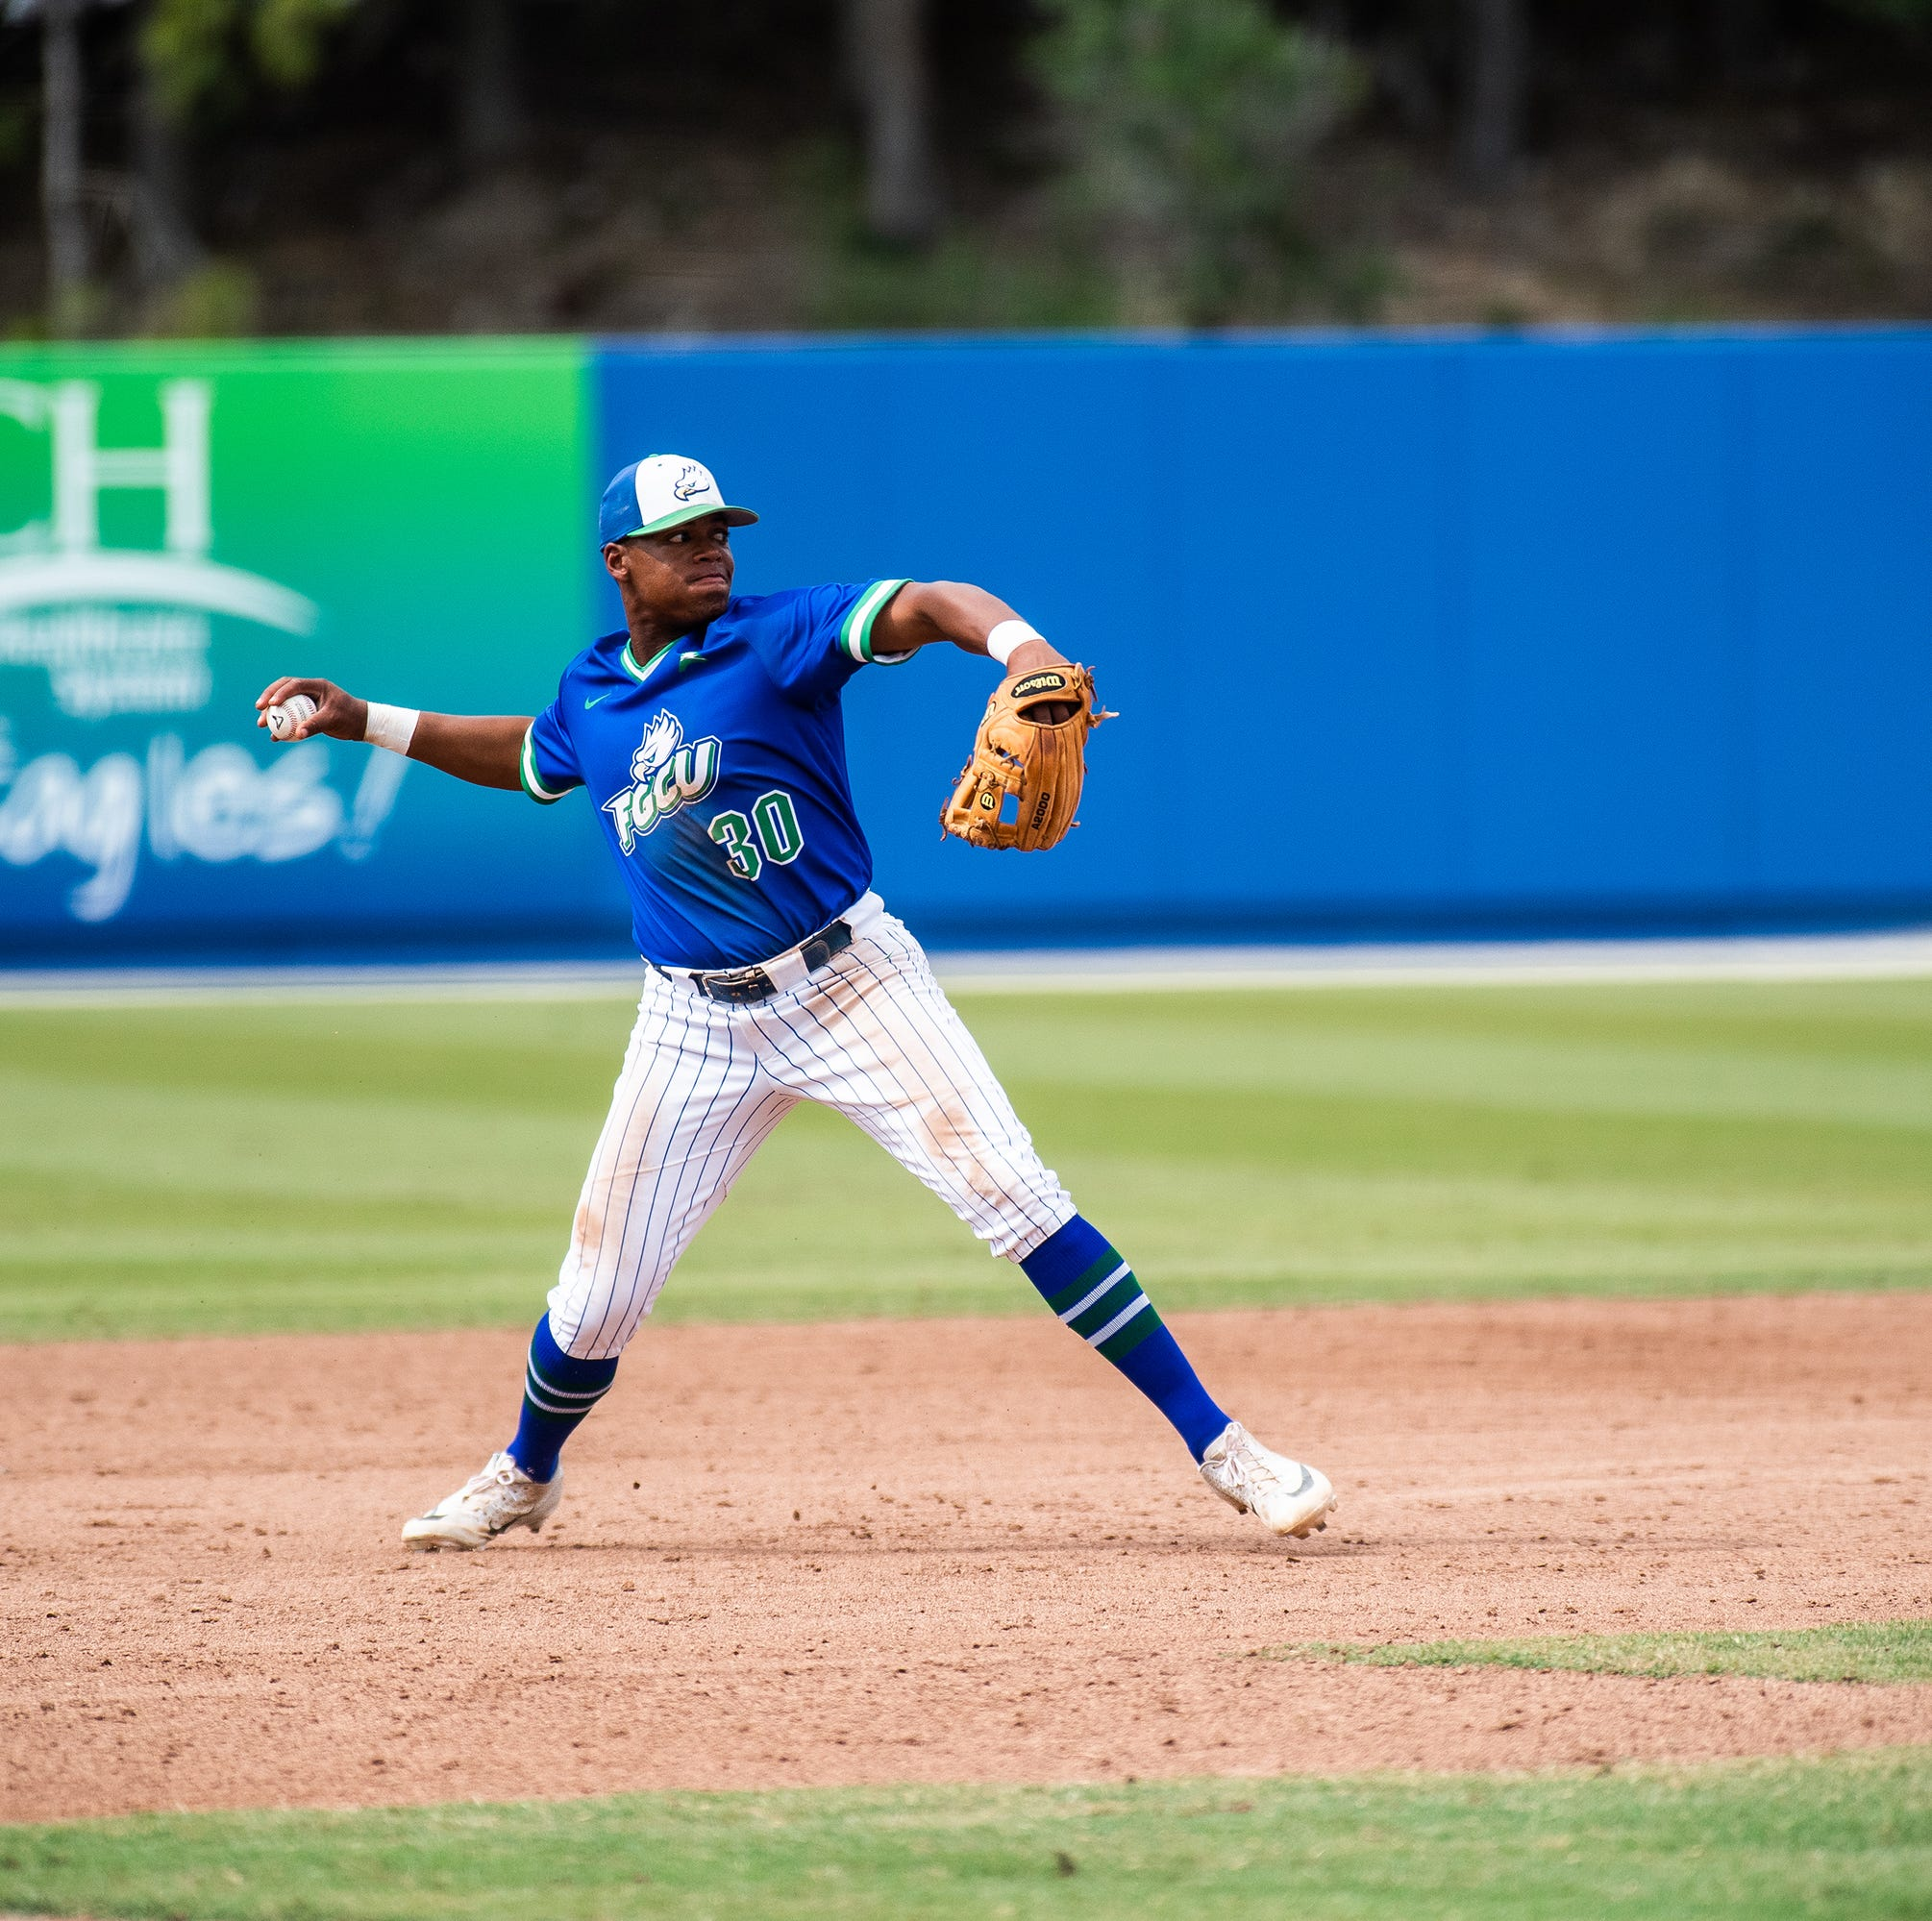 College baseball: Two years after quitting, FGCU's Jay Hayes leading Eagles against Miami